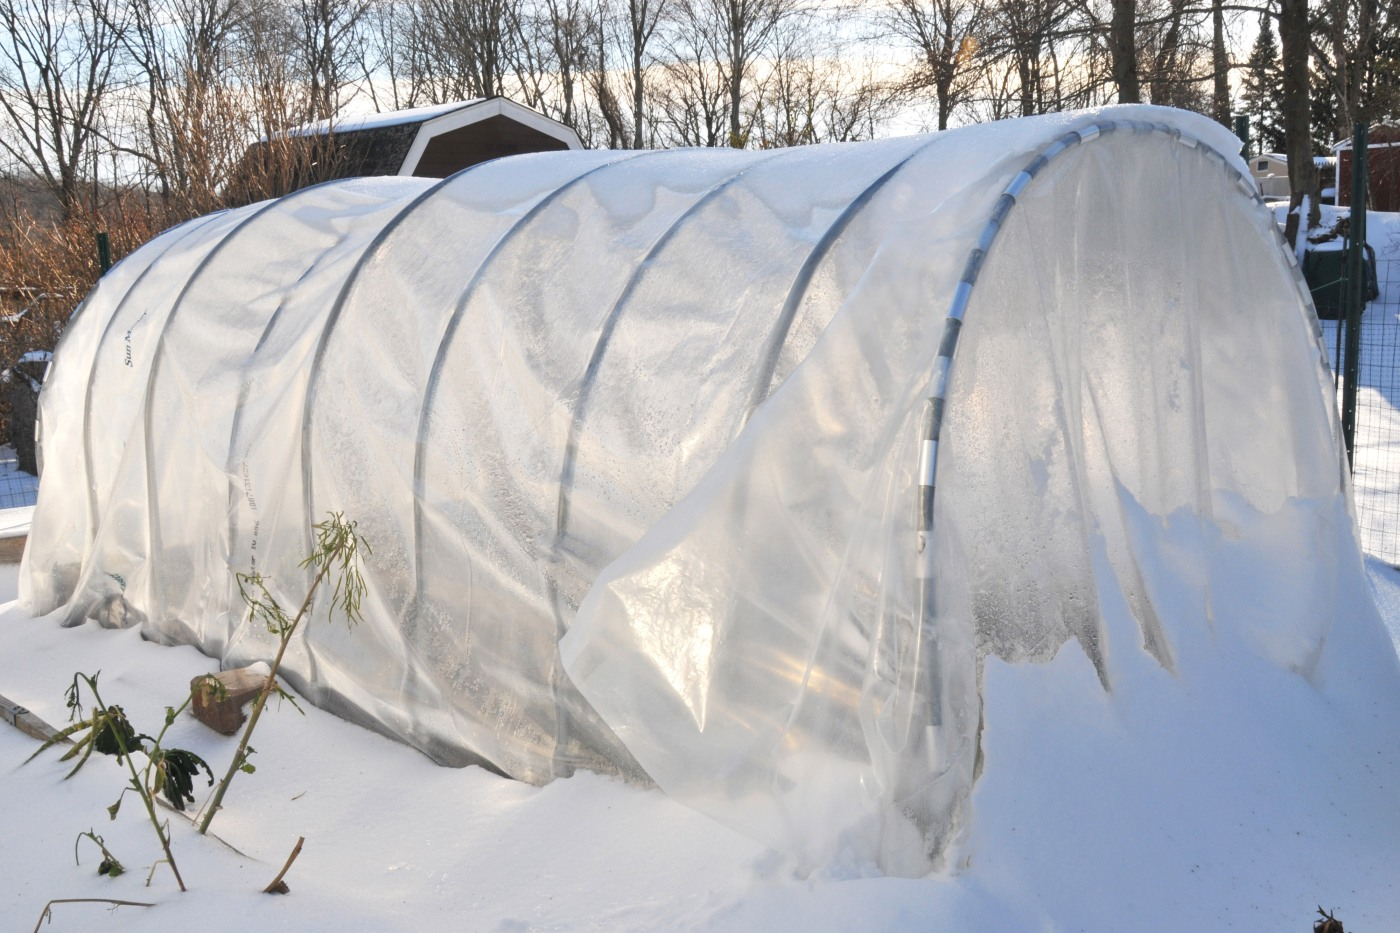 The Cold Frame – Petals and Wings